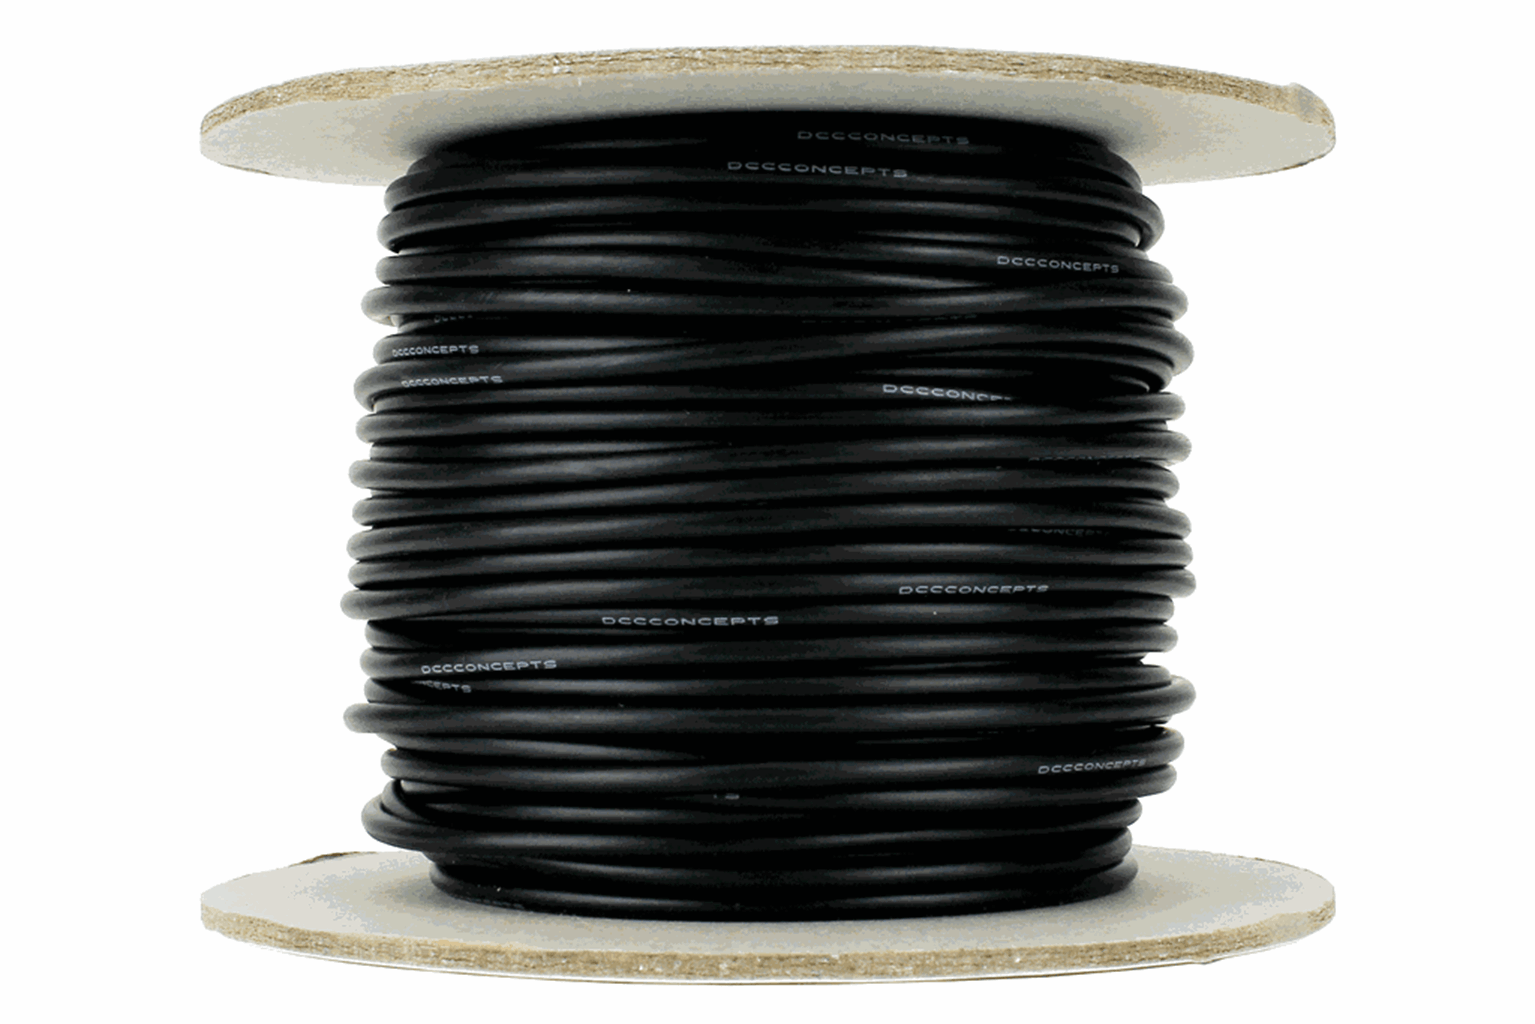 Power Bus Wire 25m of 2.5mm (13g) Black